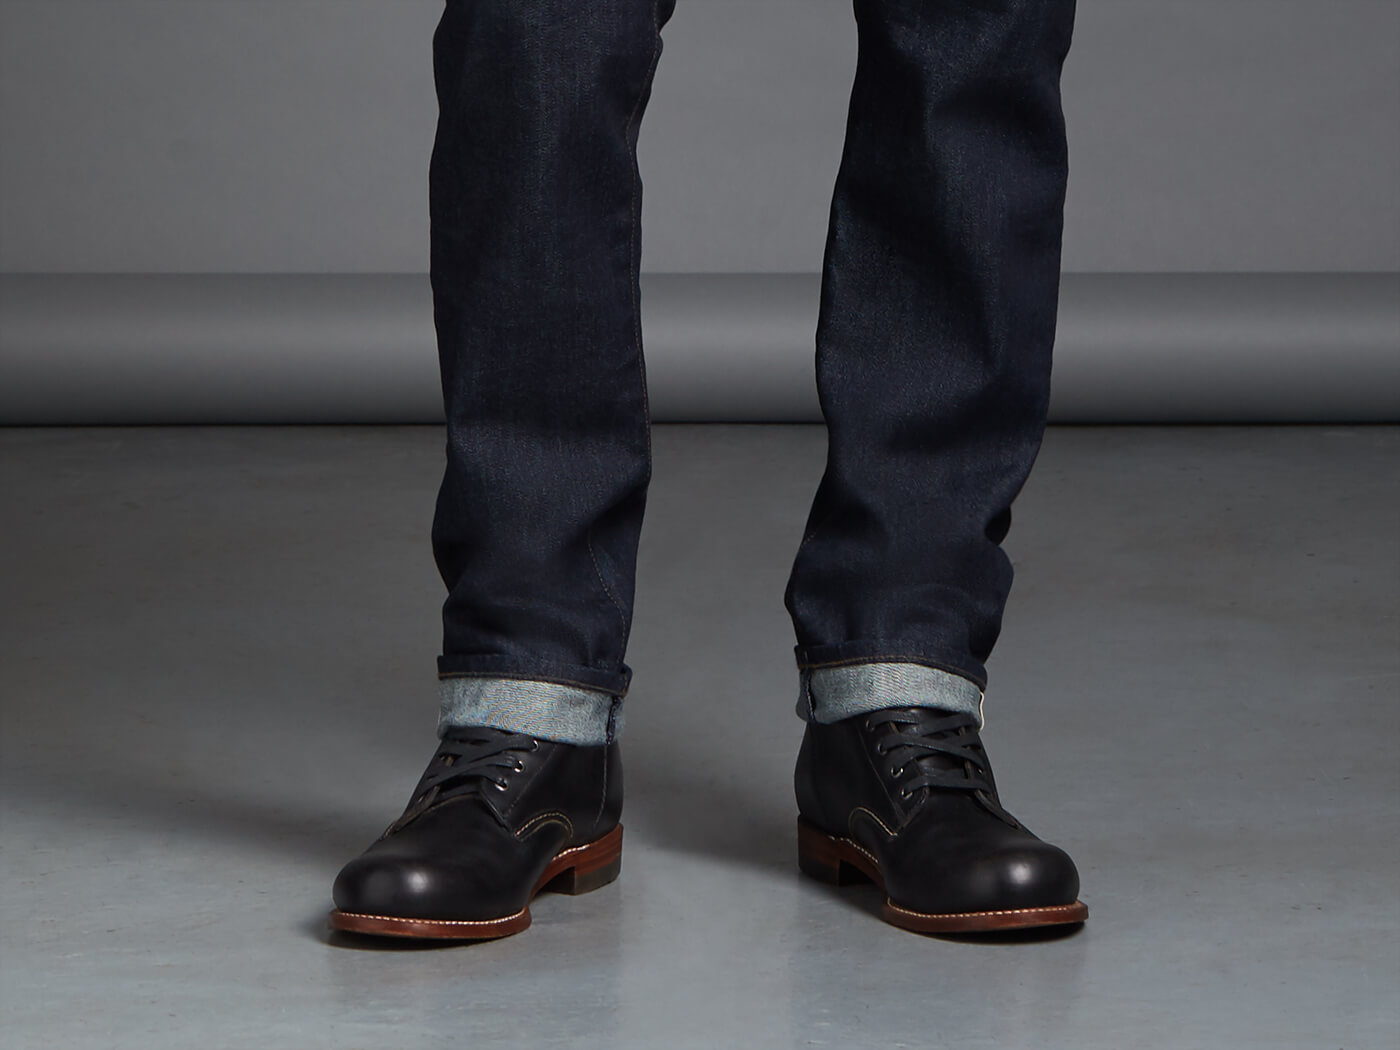 Brown shoes with jeans, especially black ones, need to be well balanced. For example, if you are wearing brown or tan Chelsea boots, make sure that you wear a jacket of the same or similar colour. On the other hand, you have black shoes with jeans.